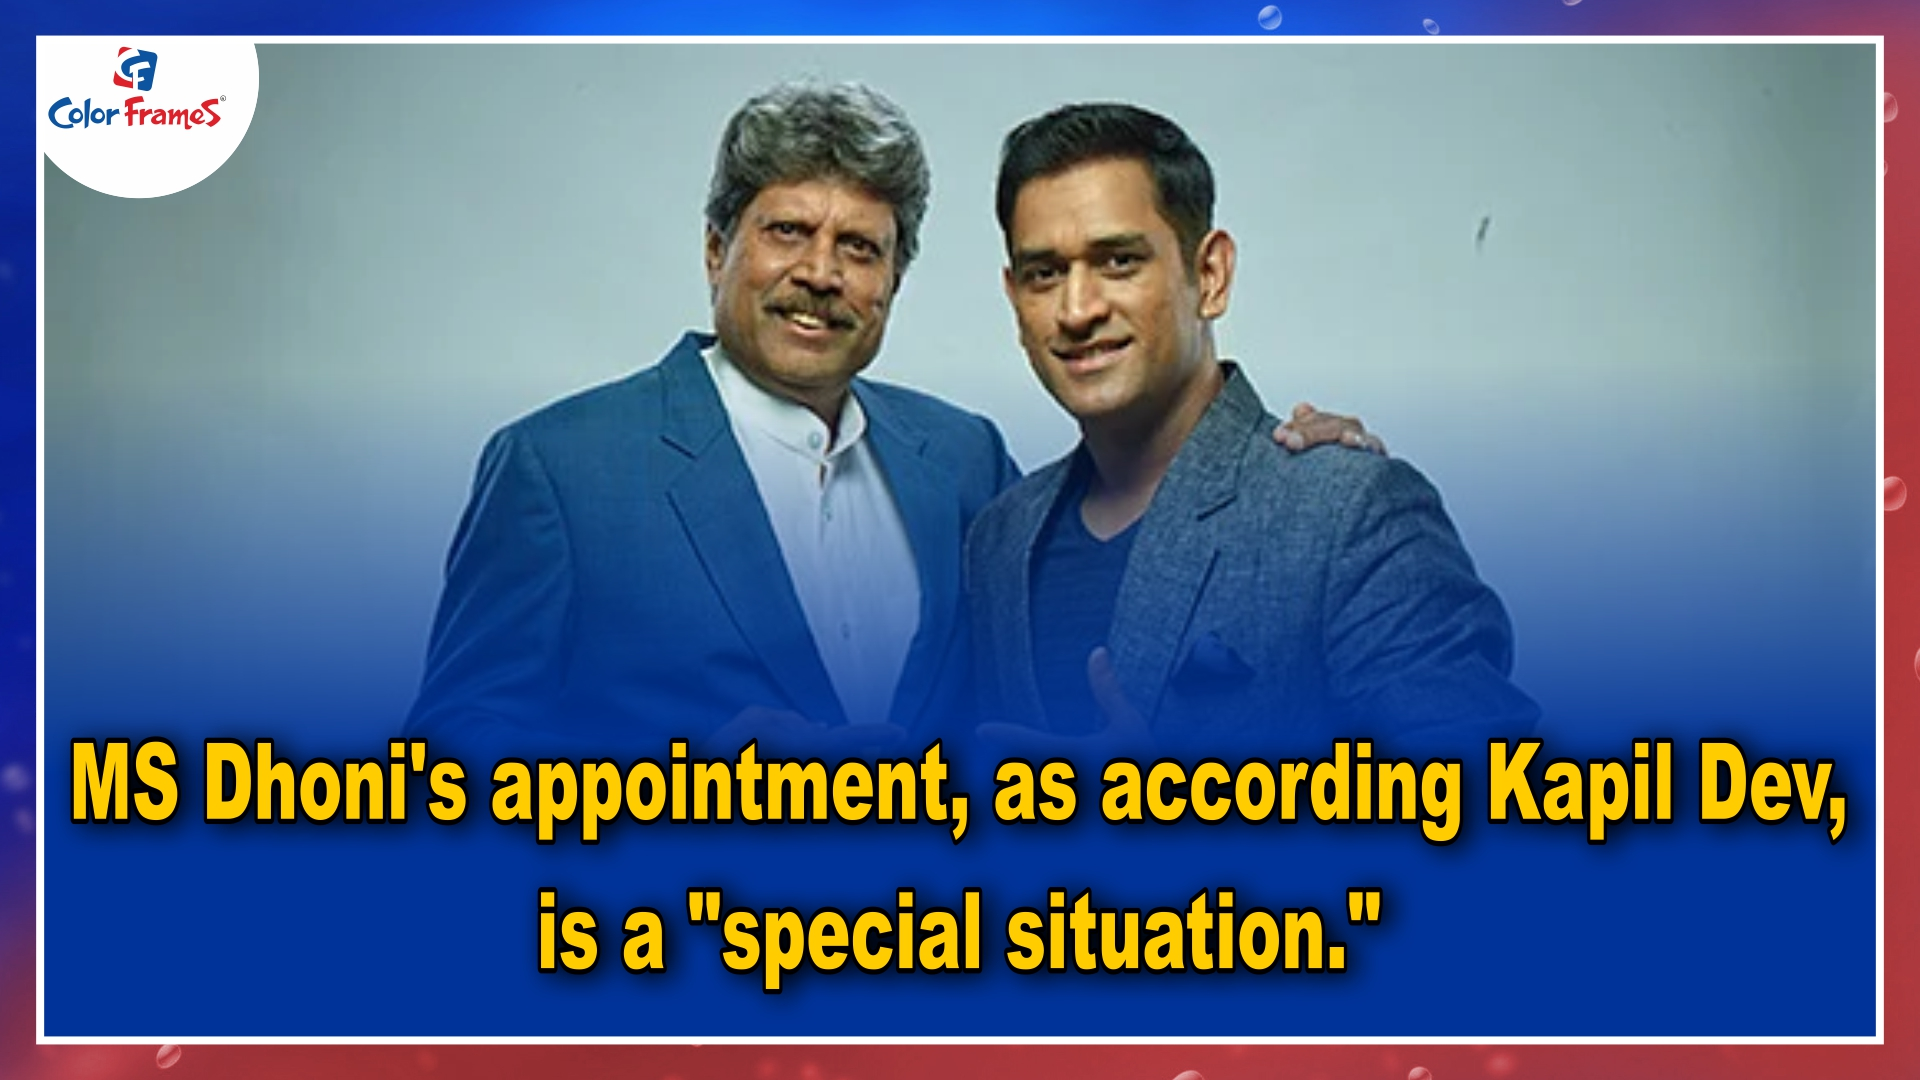 MS Dhoni's appointment, as according Kapil Dev, is a